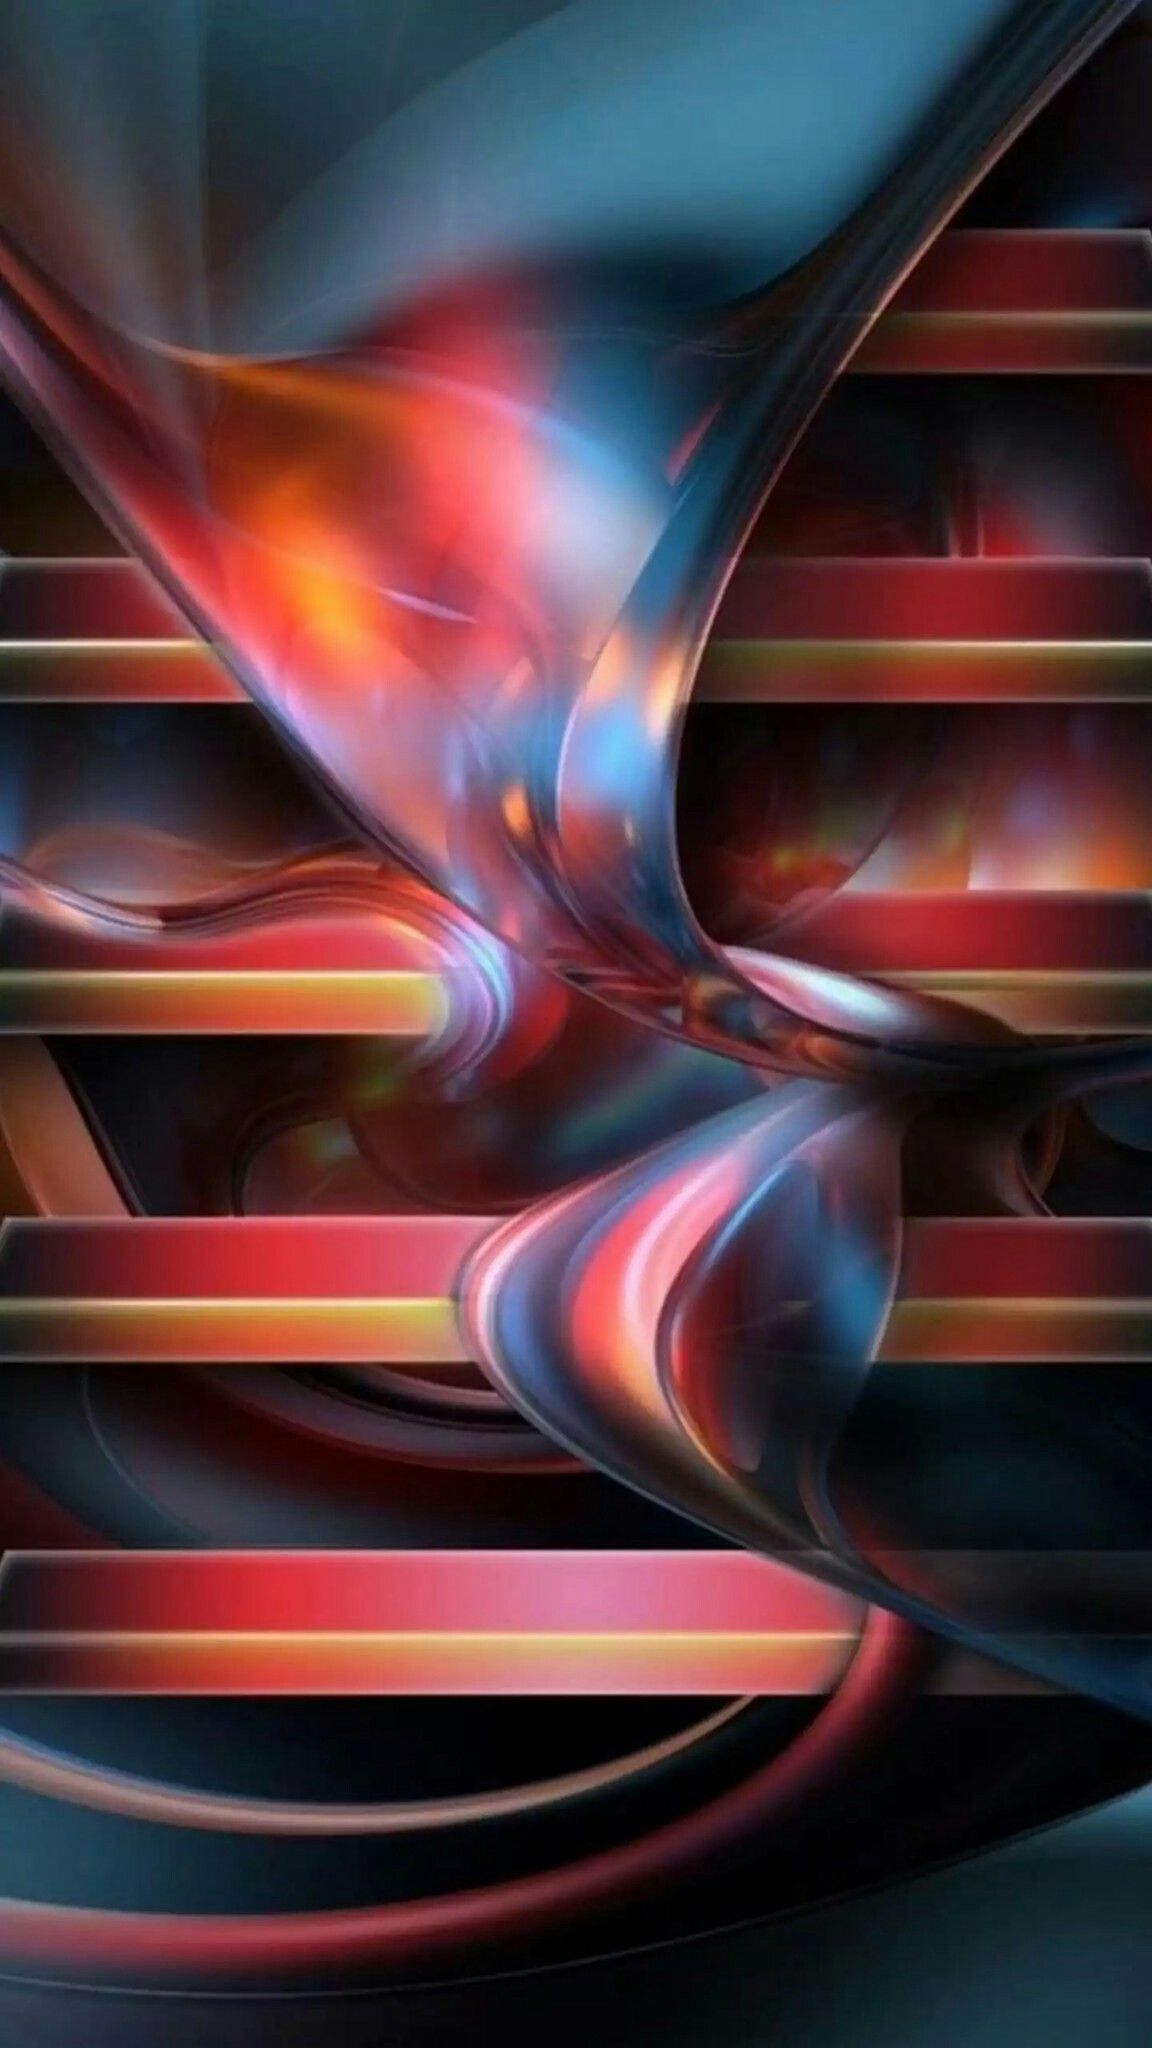 Orange And Red Wallpaper Mobile Wallpaper Android 3d Wallpaper For Mobile Abstract Wallpaper 3d wallpaper for mobile screen